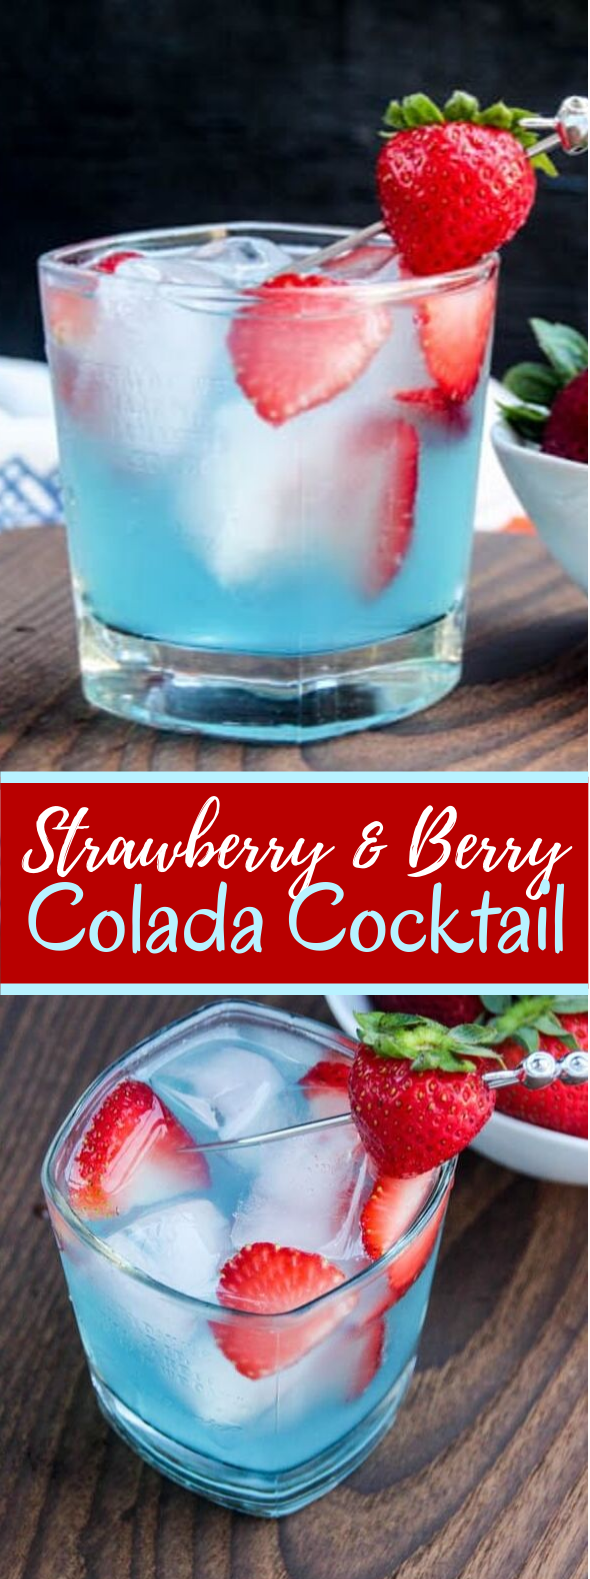 STRAWBERRY & BERRY COLADA COCKTAIL #drinks #summerdrink